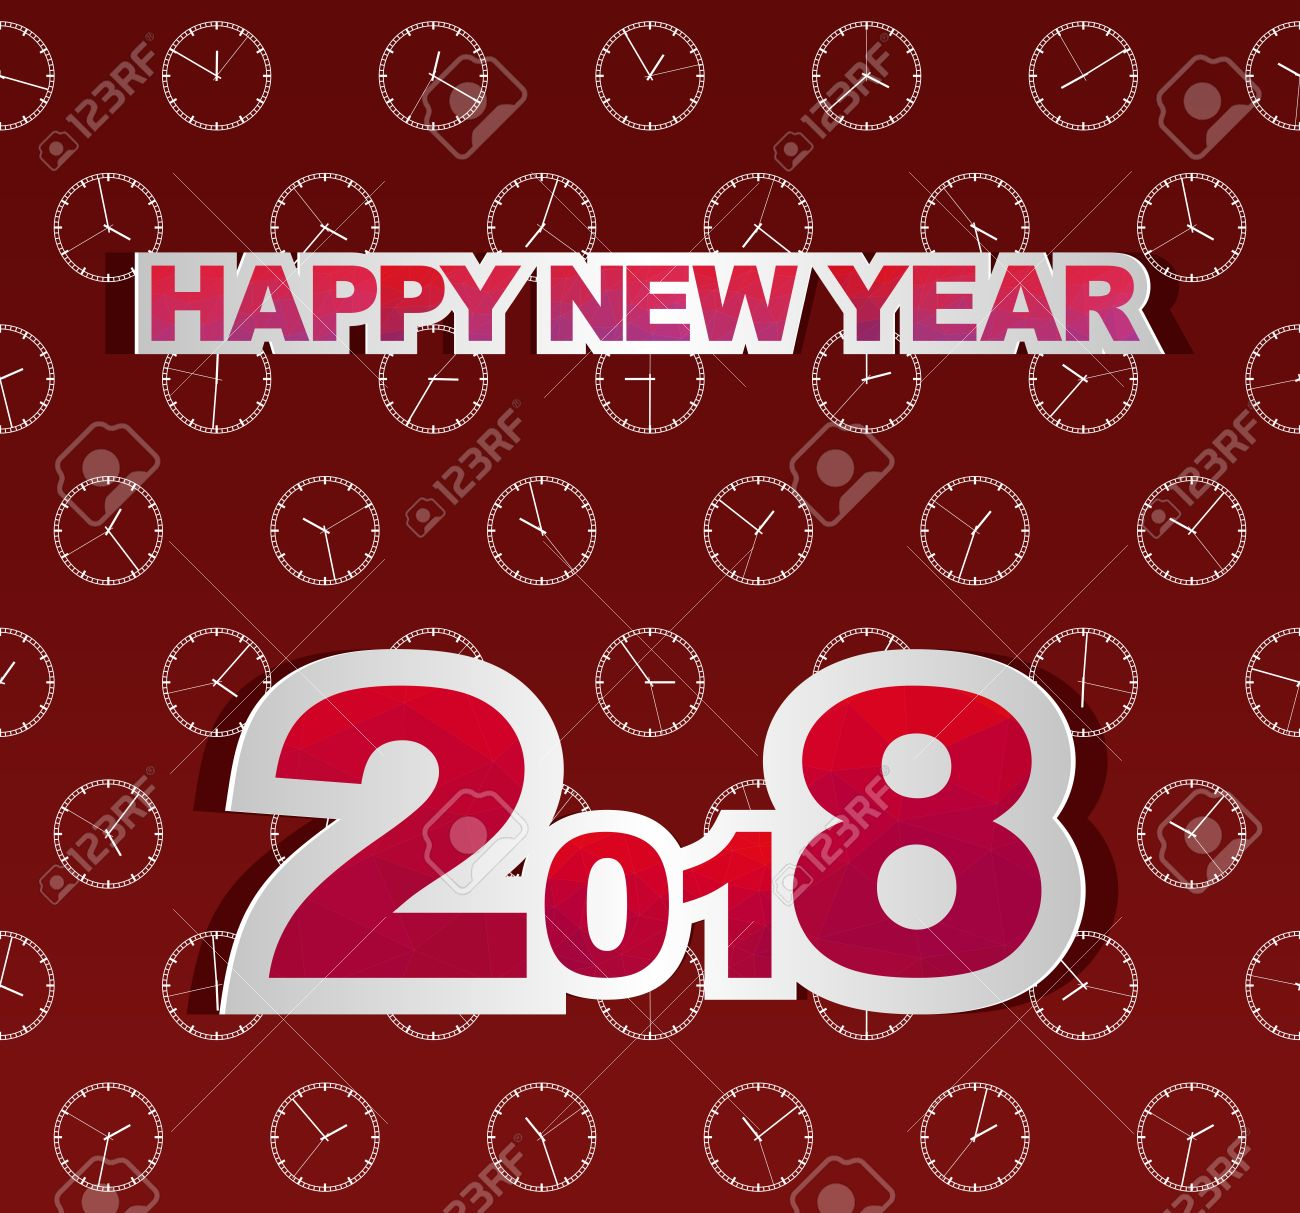 Dark Red New Year Greetings For 2018 With White The Watch Different